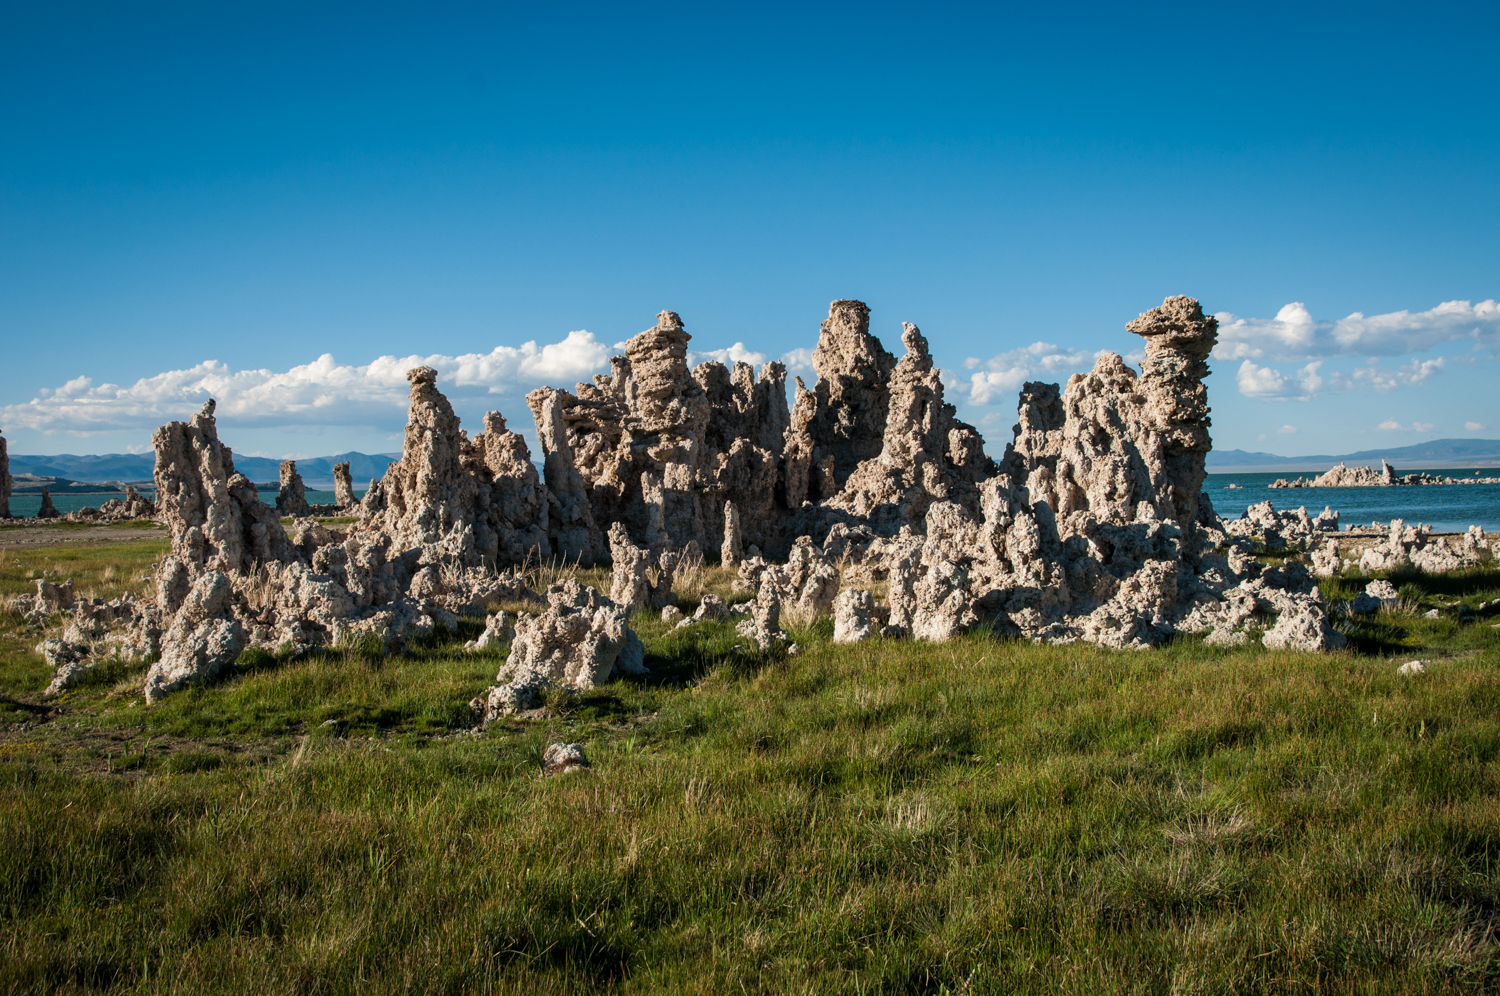 mono-lake-tufas-jpg.30701_The New American Dream: Vagabond imagery and tales from the road._Travel Stories_Squat the Planet_12:03 PM